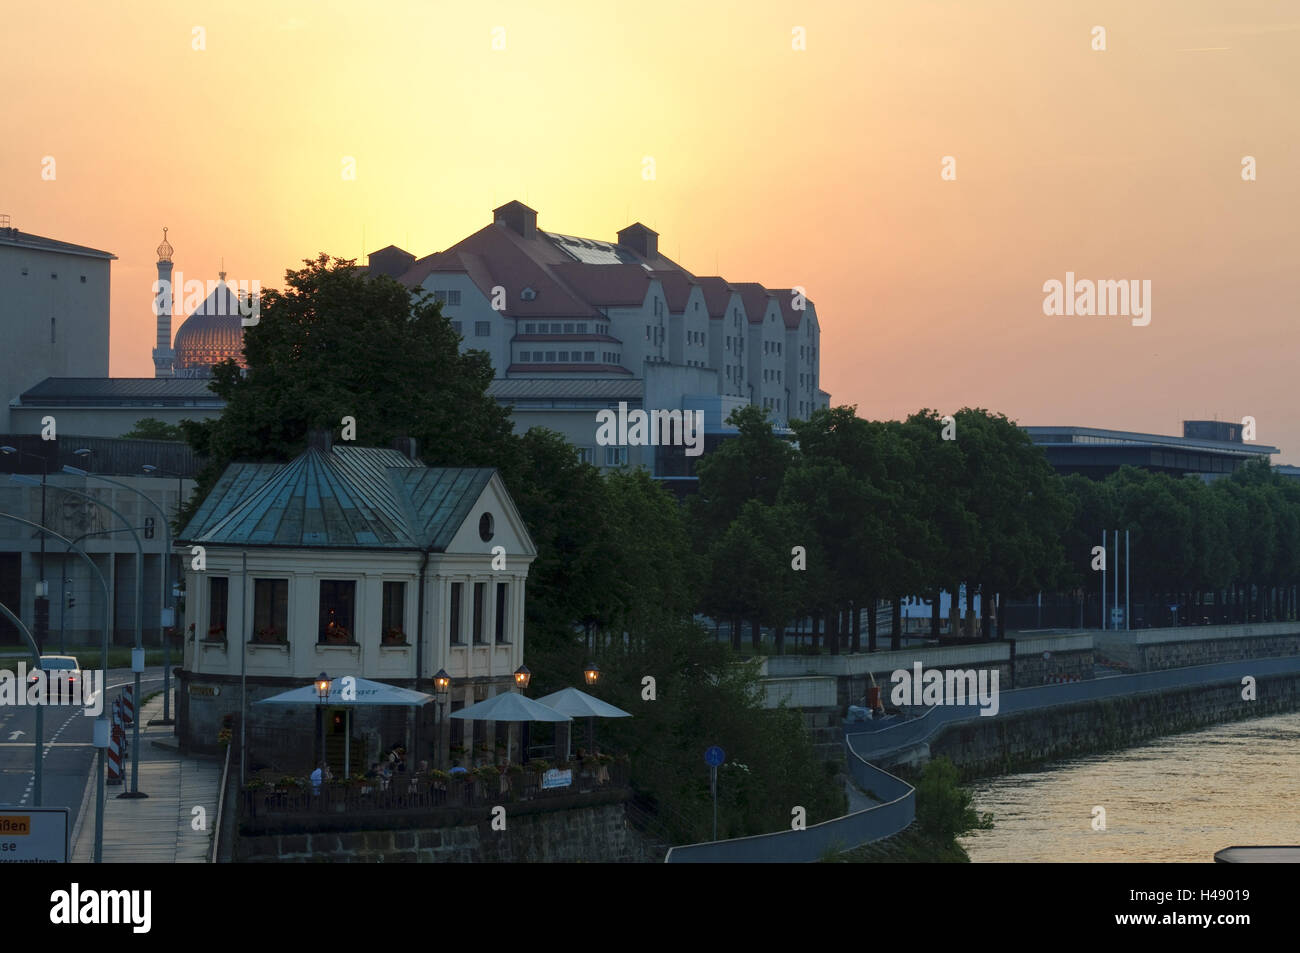 Bastion small castles, Erlweinspeicher, dusk, Dresden, Saxon, Germany, - Stock Image